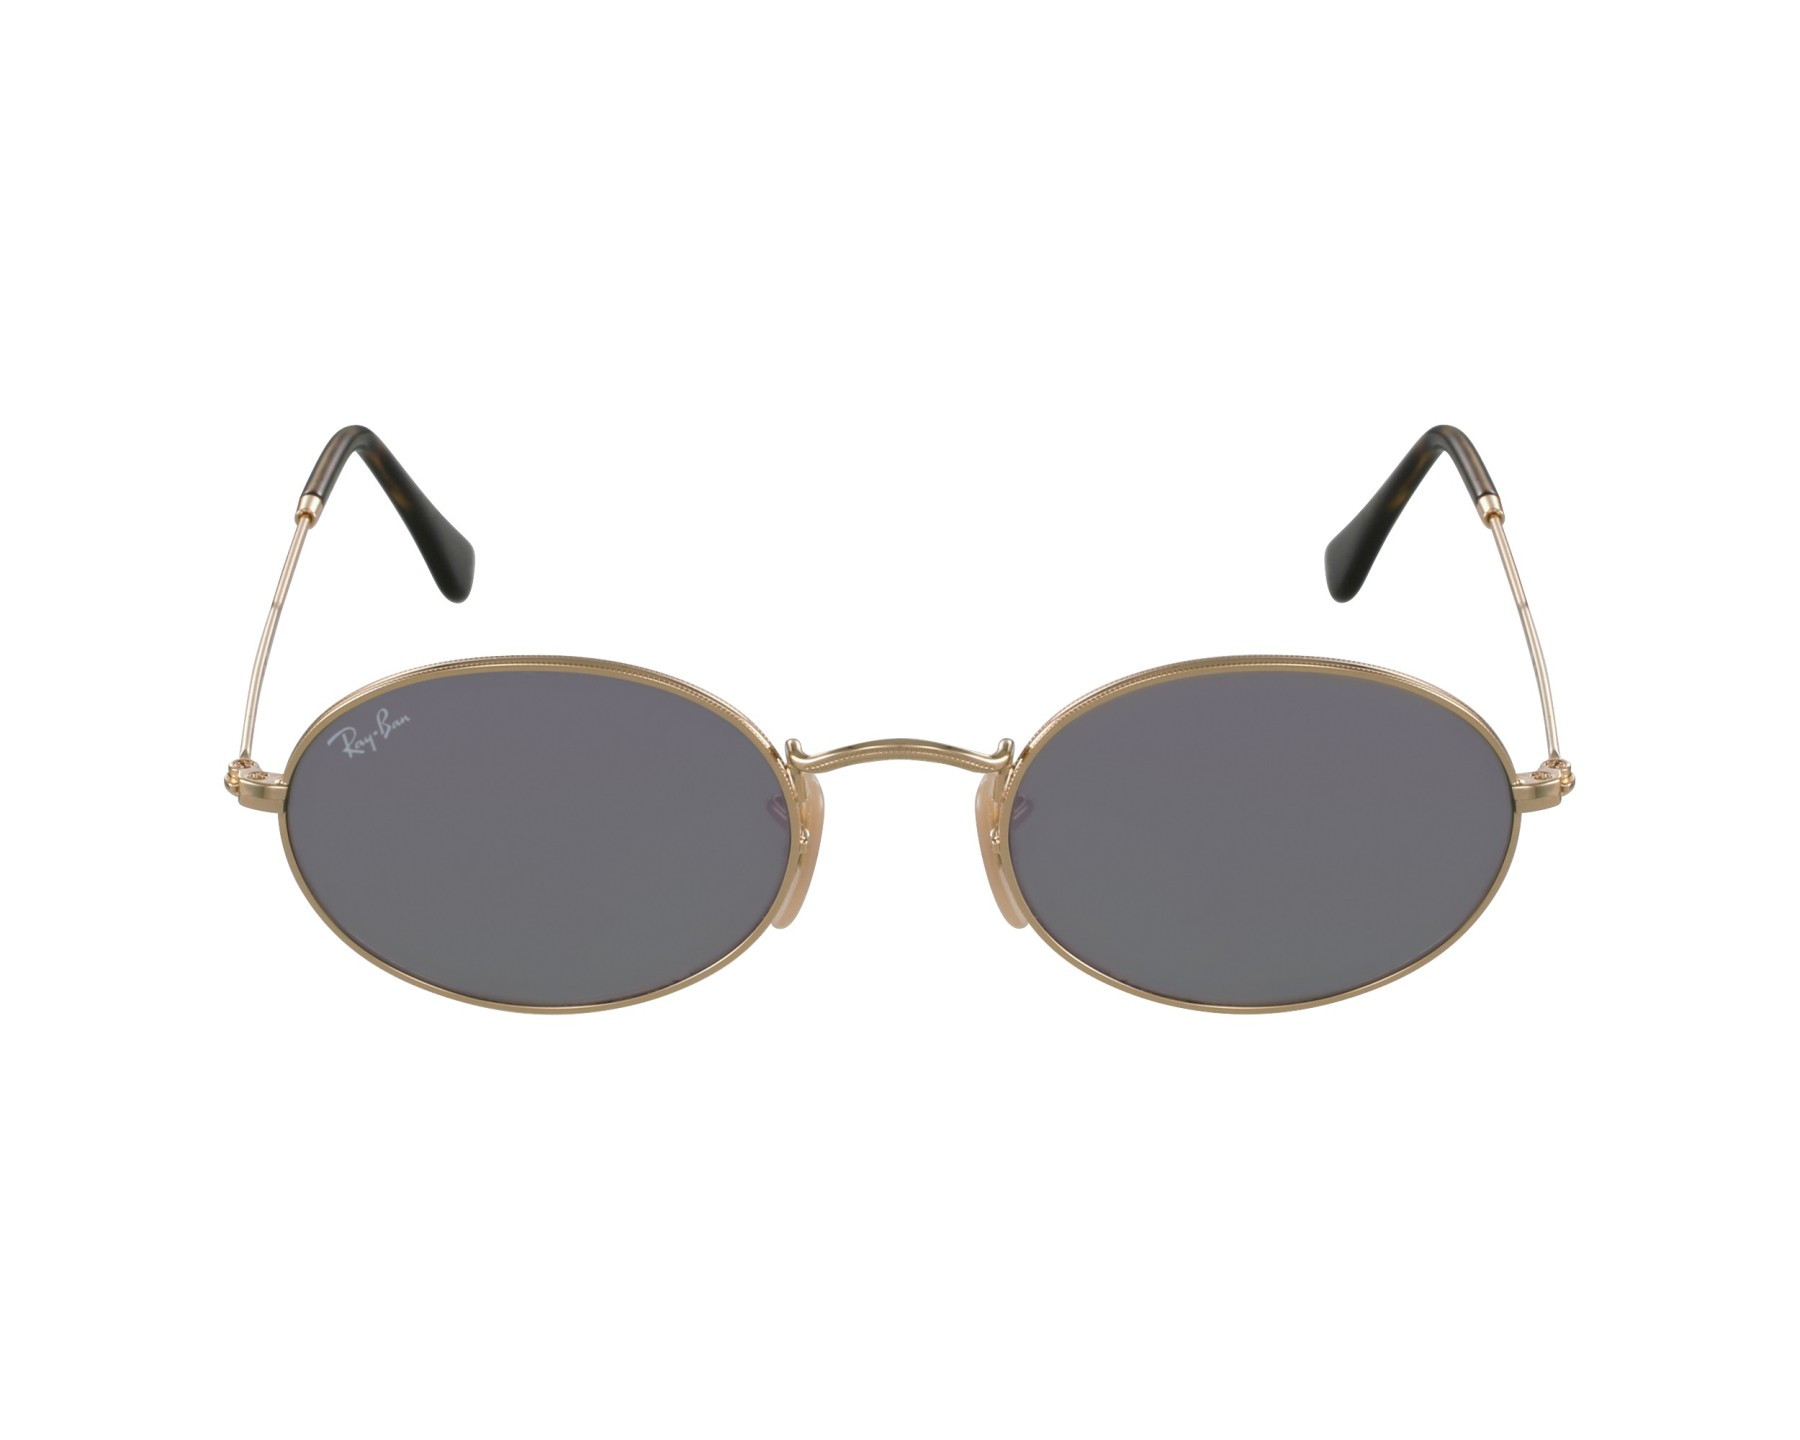 7539f3d1f06 Sunglasses Ray-Ban RB-3547-N 001 8O - Gold profile view